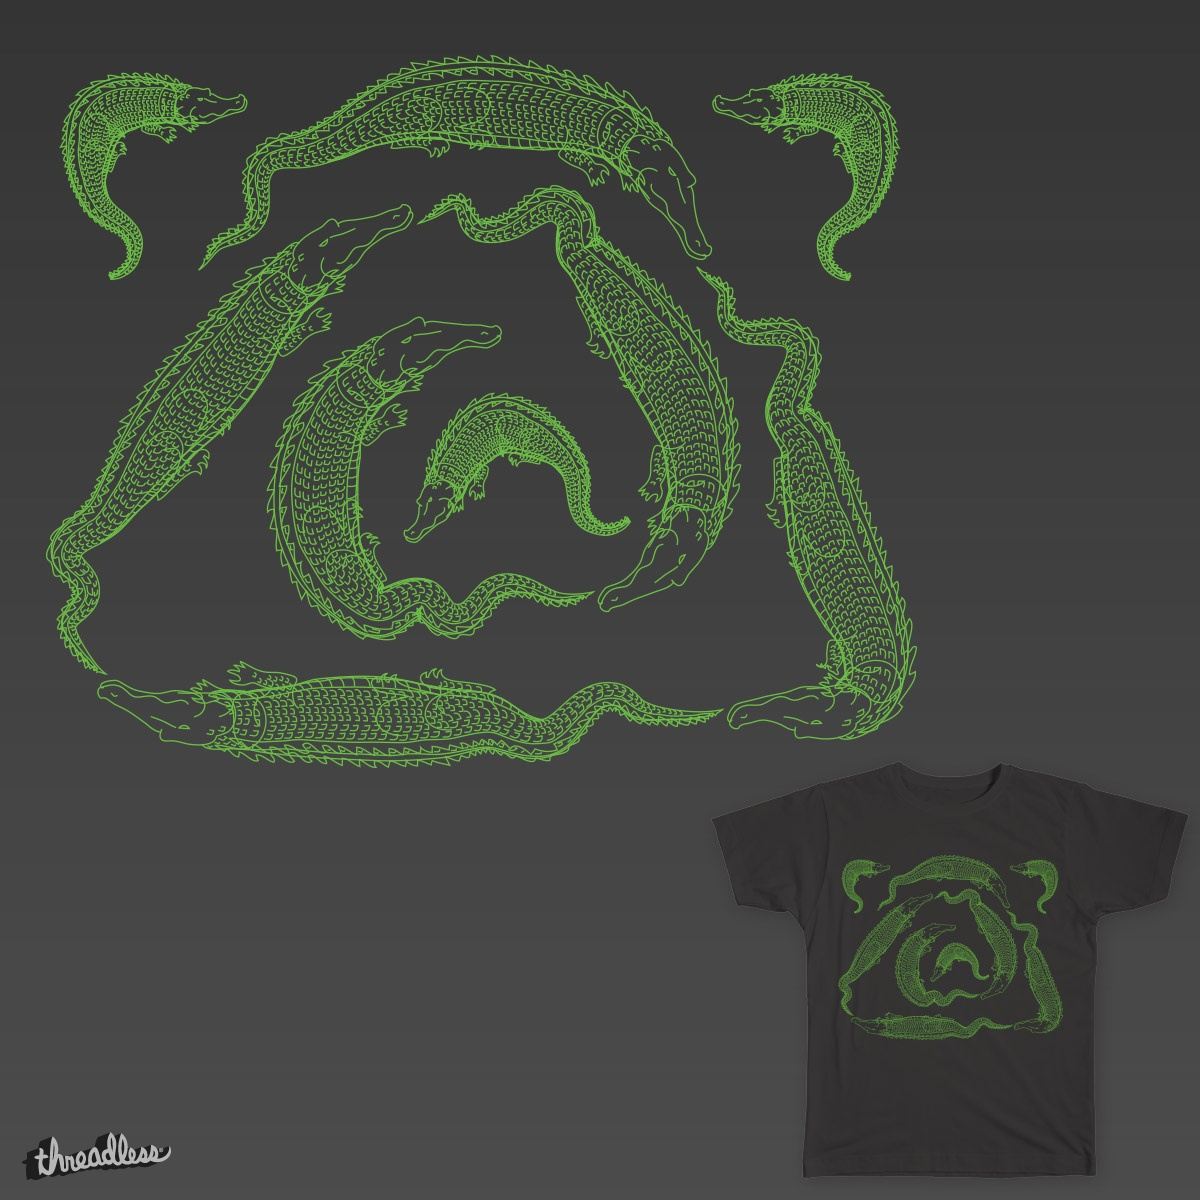 Crocodile Waltz, a cool t-shirt design